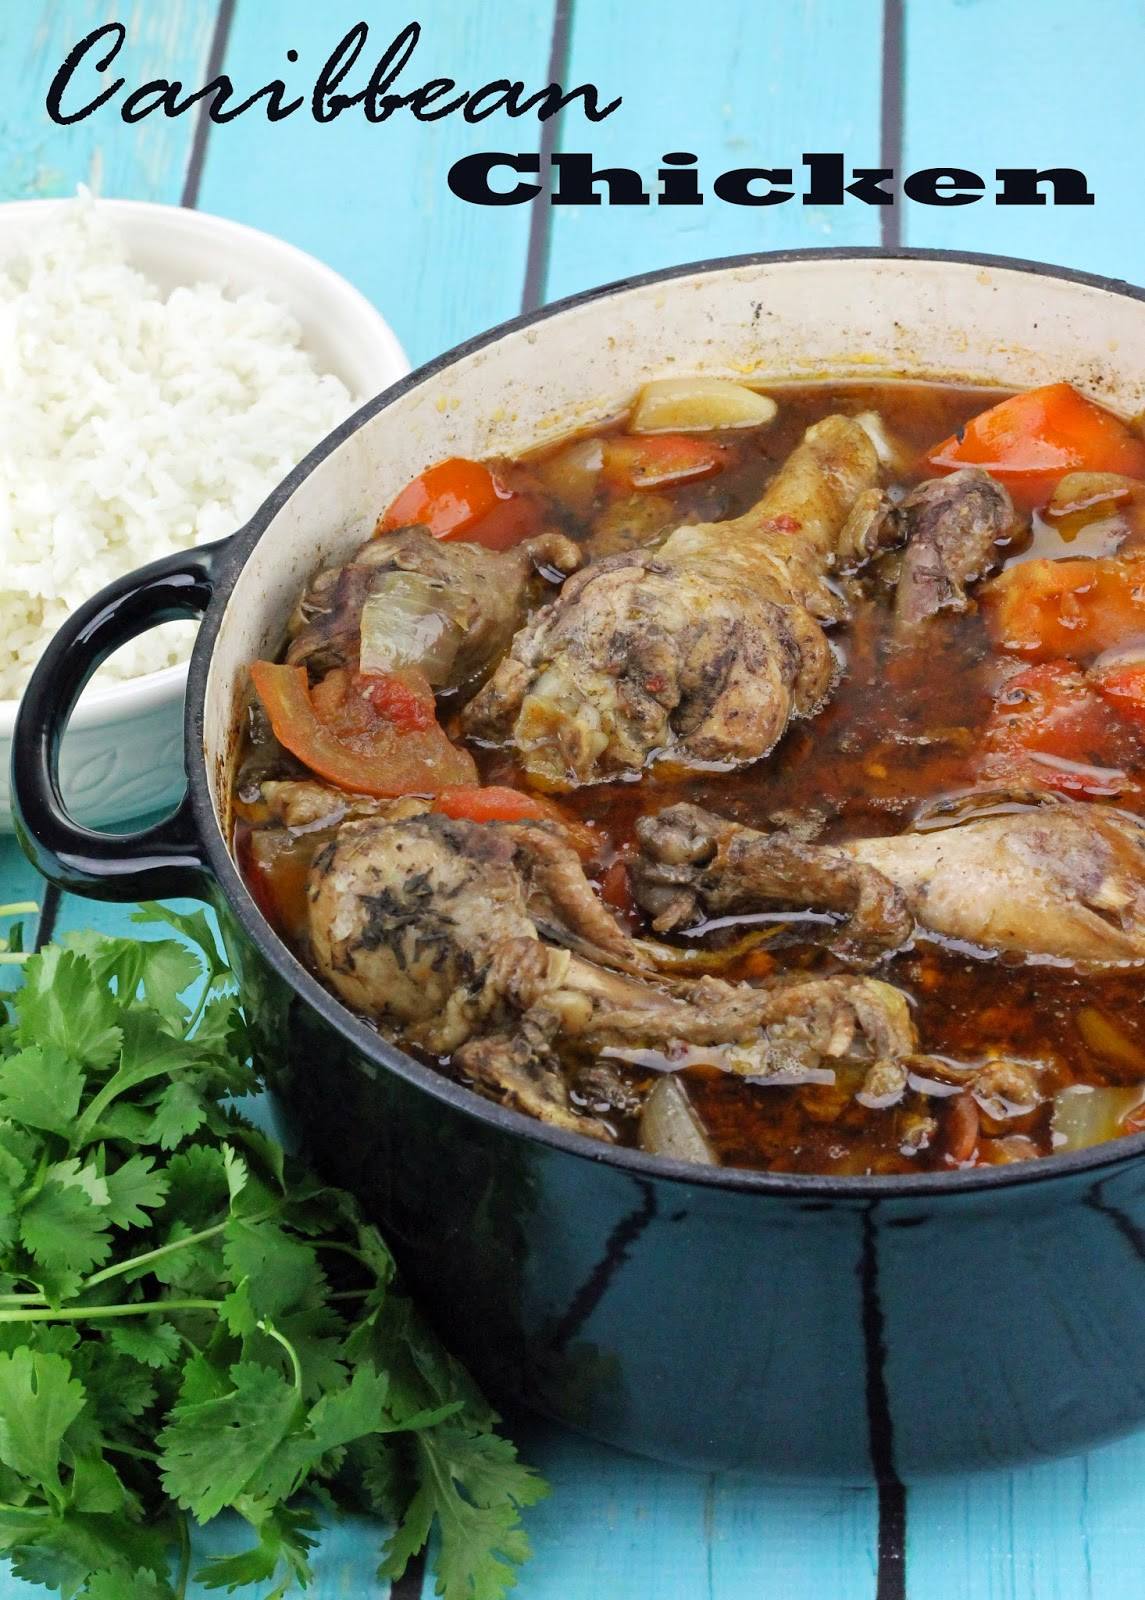 The Stay At Home Chef: Braised Caribbean Chicken